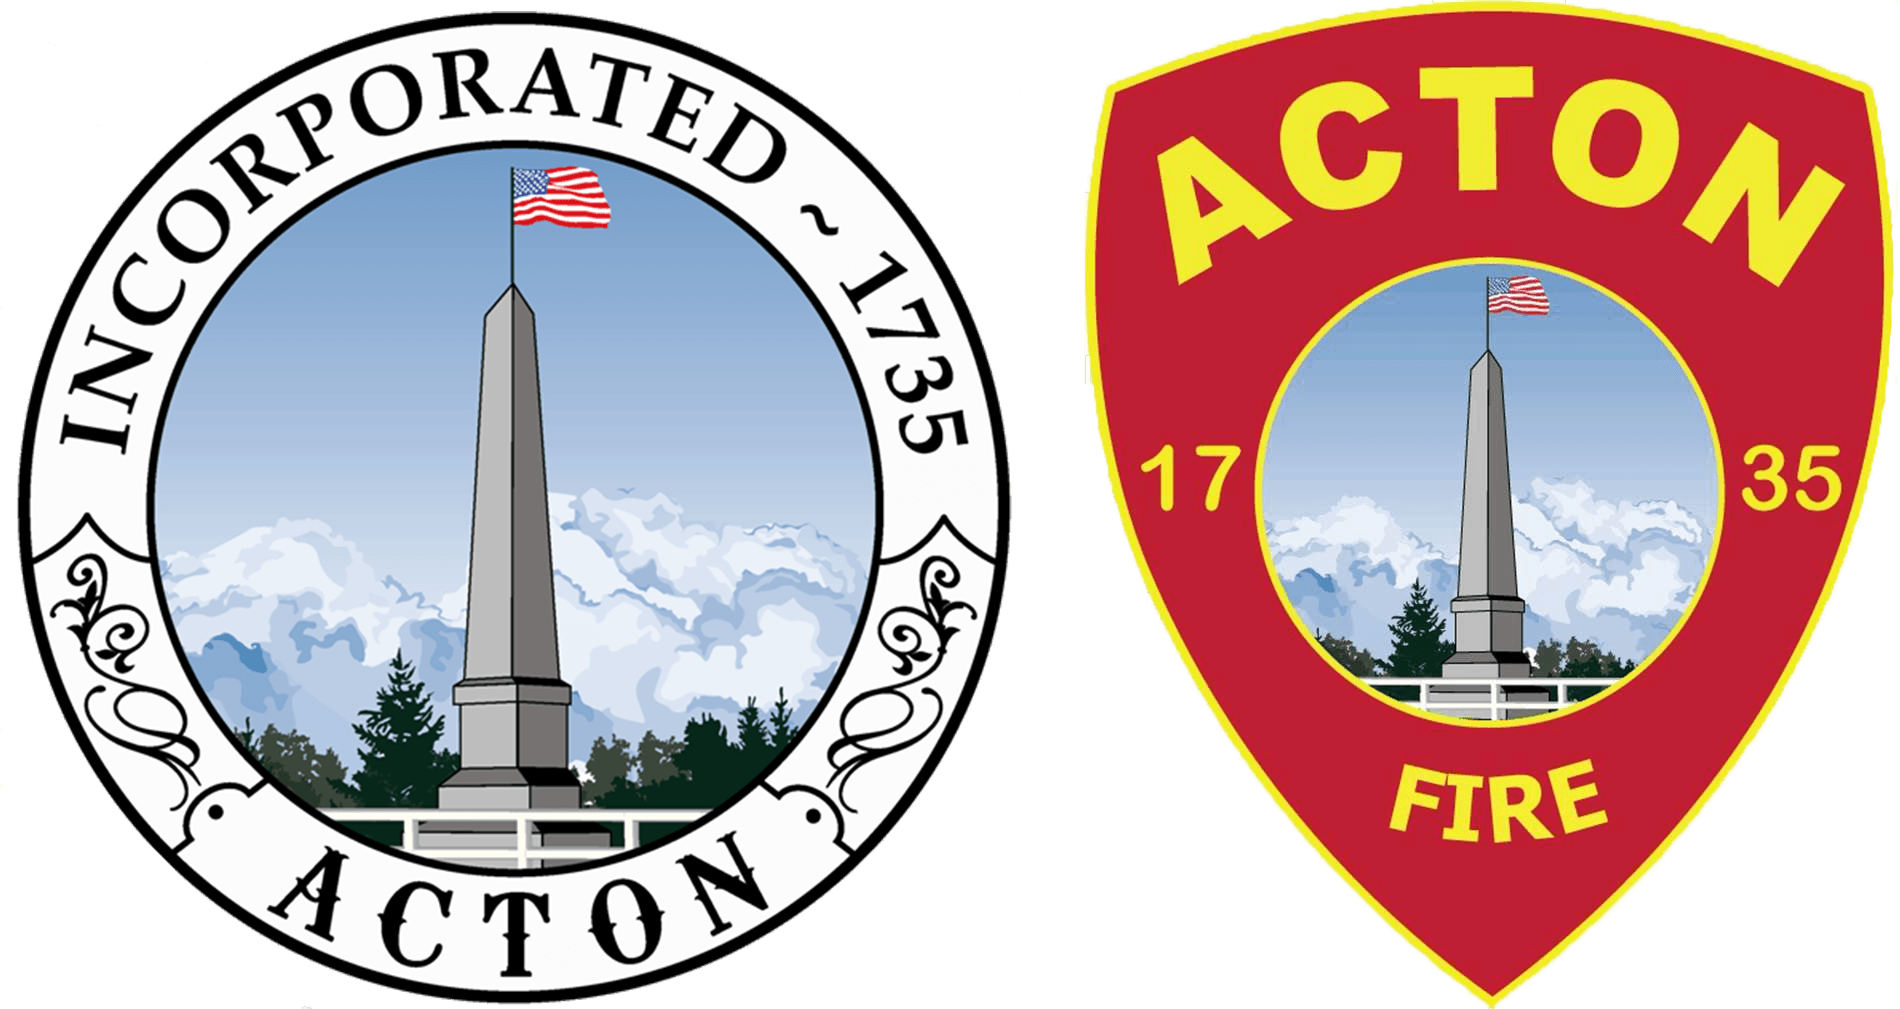 Acton Fire and Town Seal Side-by-Side